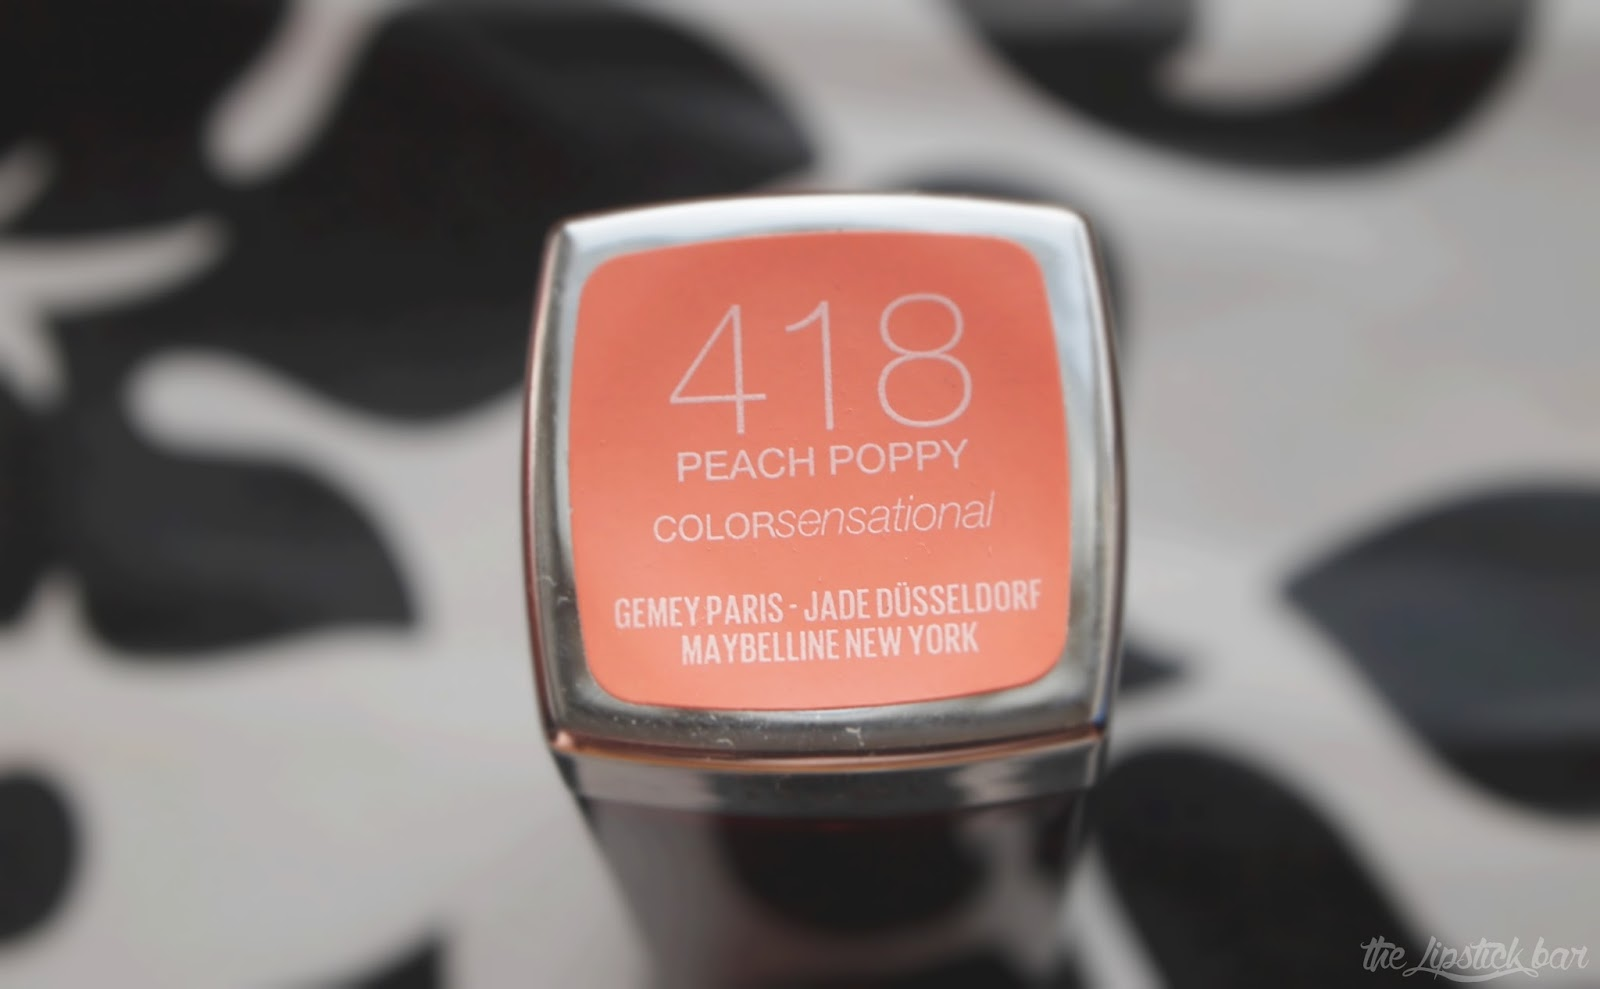 Maybelline colorsensational 418 Peach Poppy